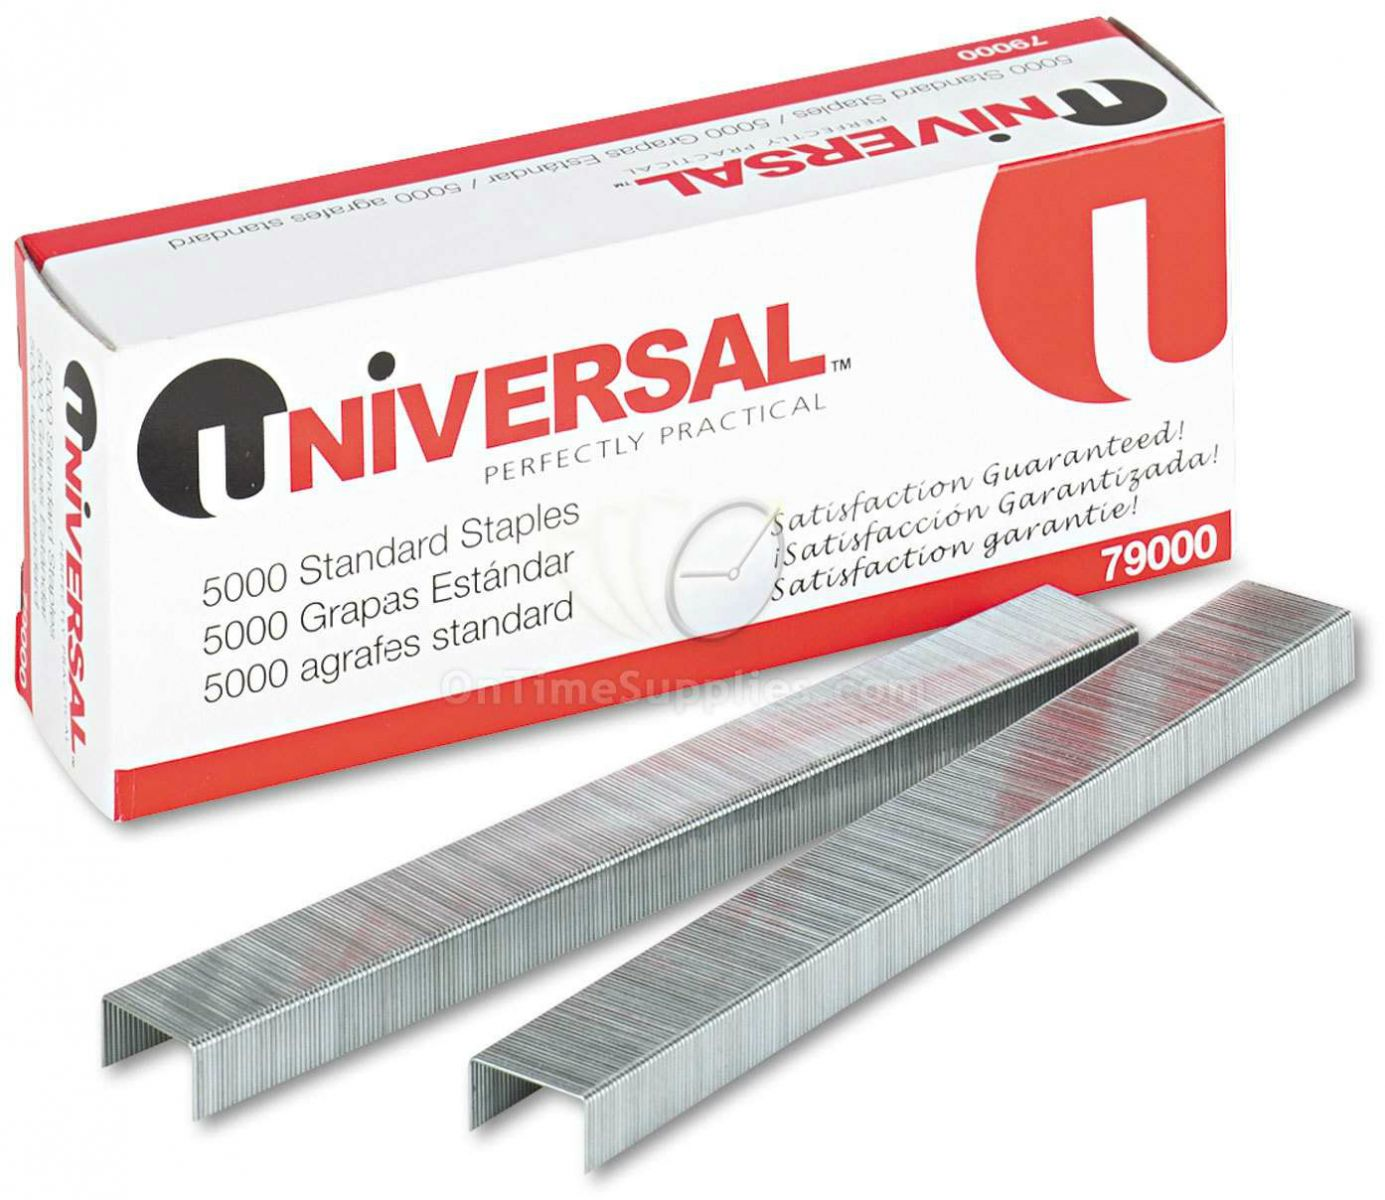 Standard Chisel Point 210 Strip Count Staples, 5,000/Box